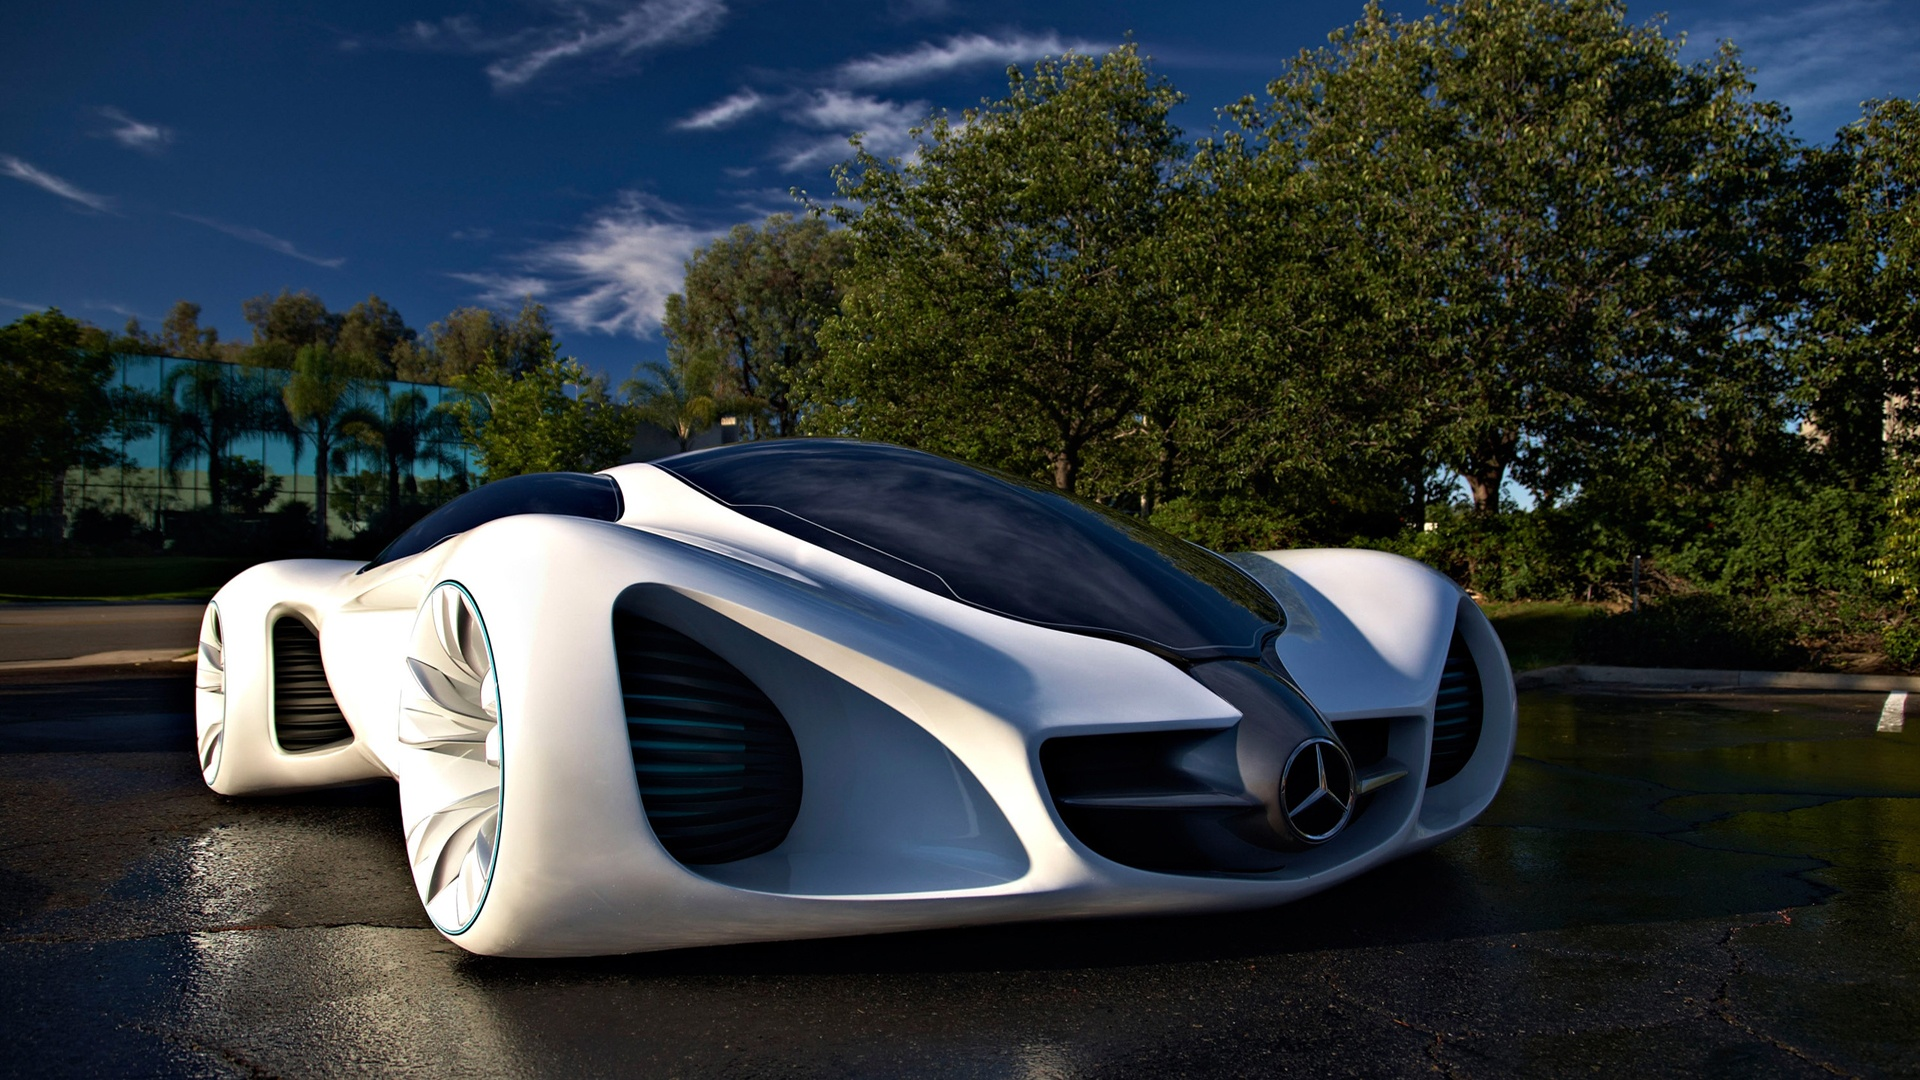 Formakers biome concept mercedes benz for What is the fastest mercedes benz car